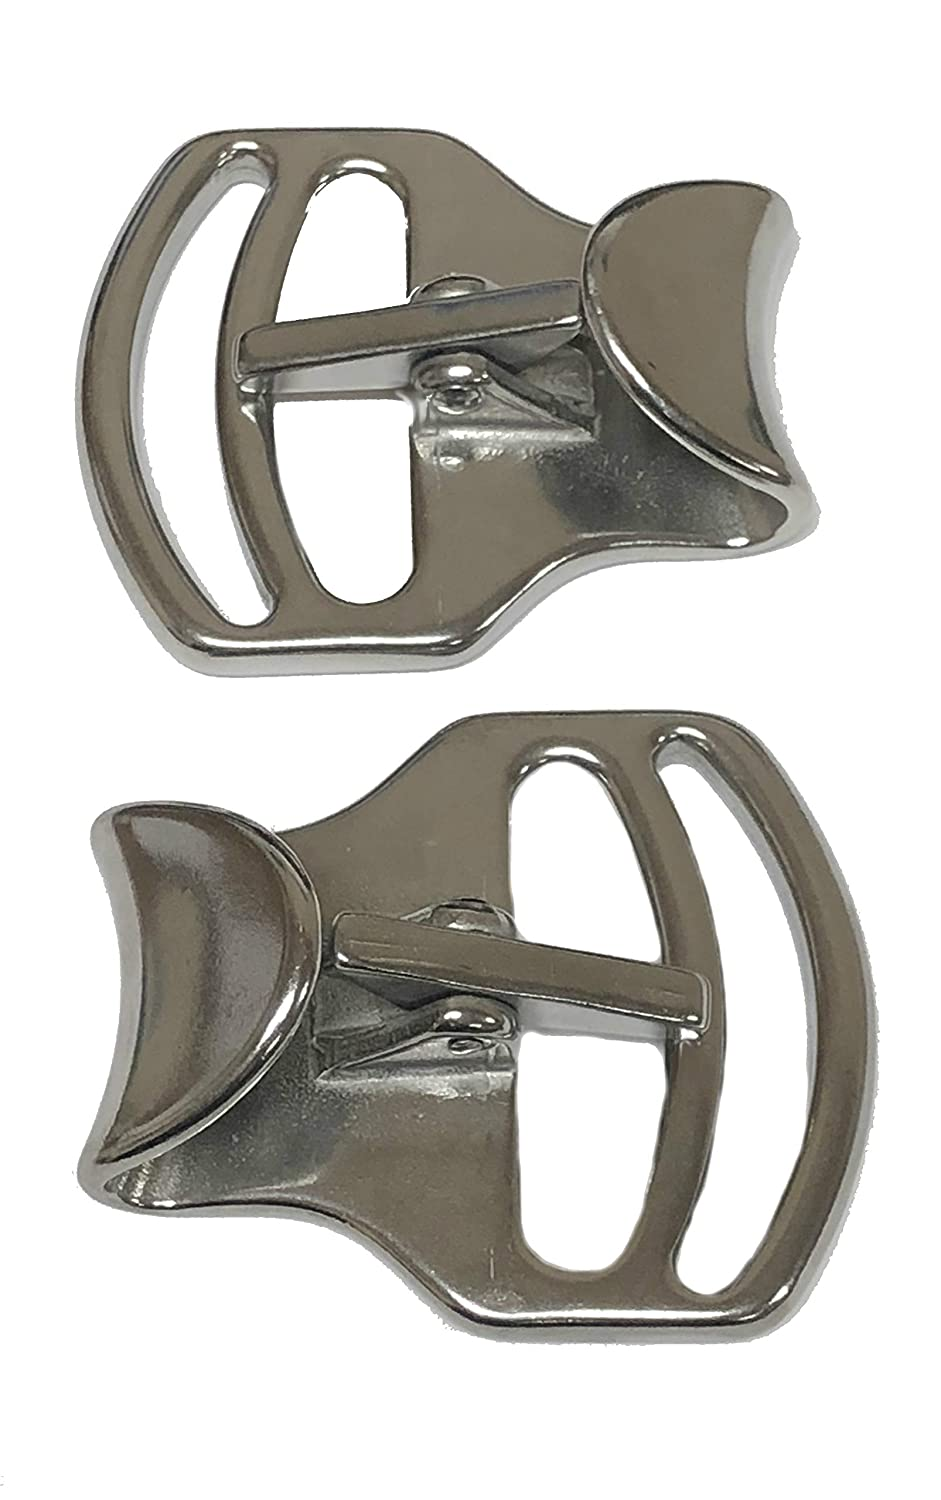 2 Pack of Two Inch Tackaberry Buckles, Heavy Duty Solid Stainless Steel, 2', Won't Rust, Makes Cinching A Breeze